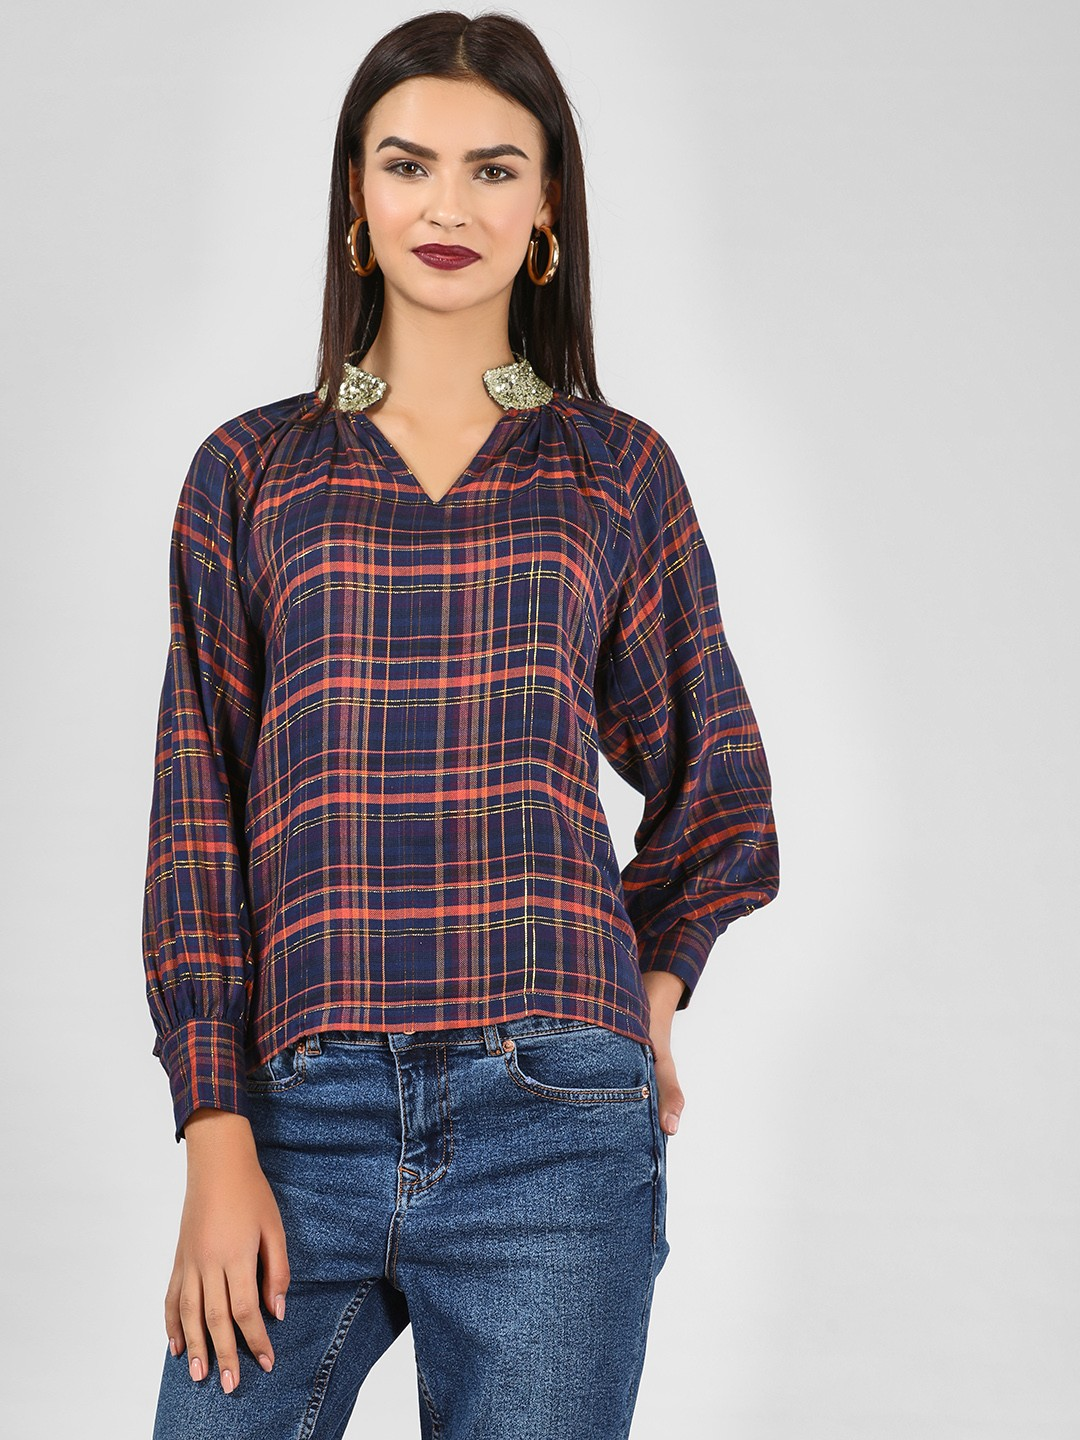 KOOVS Multi Sequin Collar Multi-Check Top 1